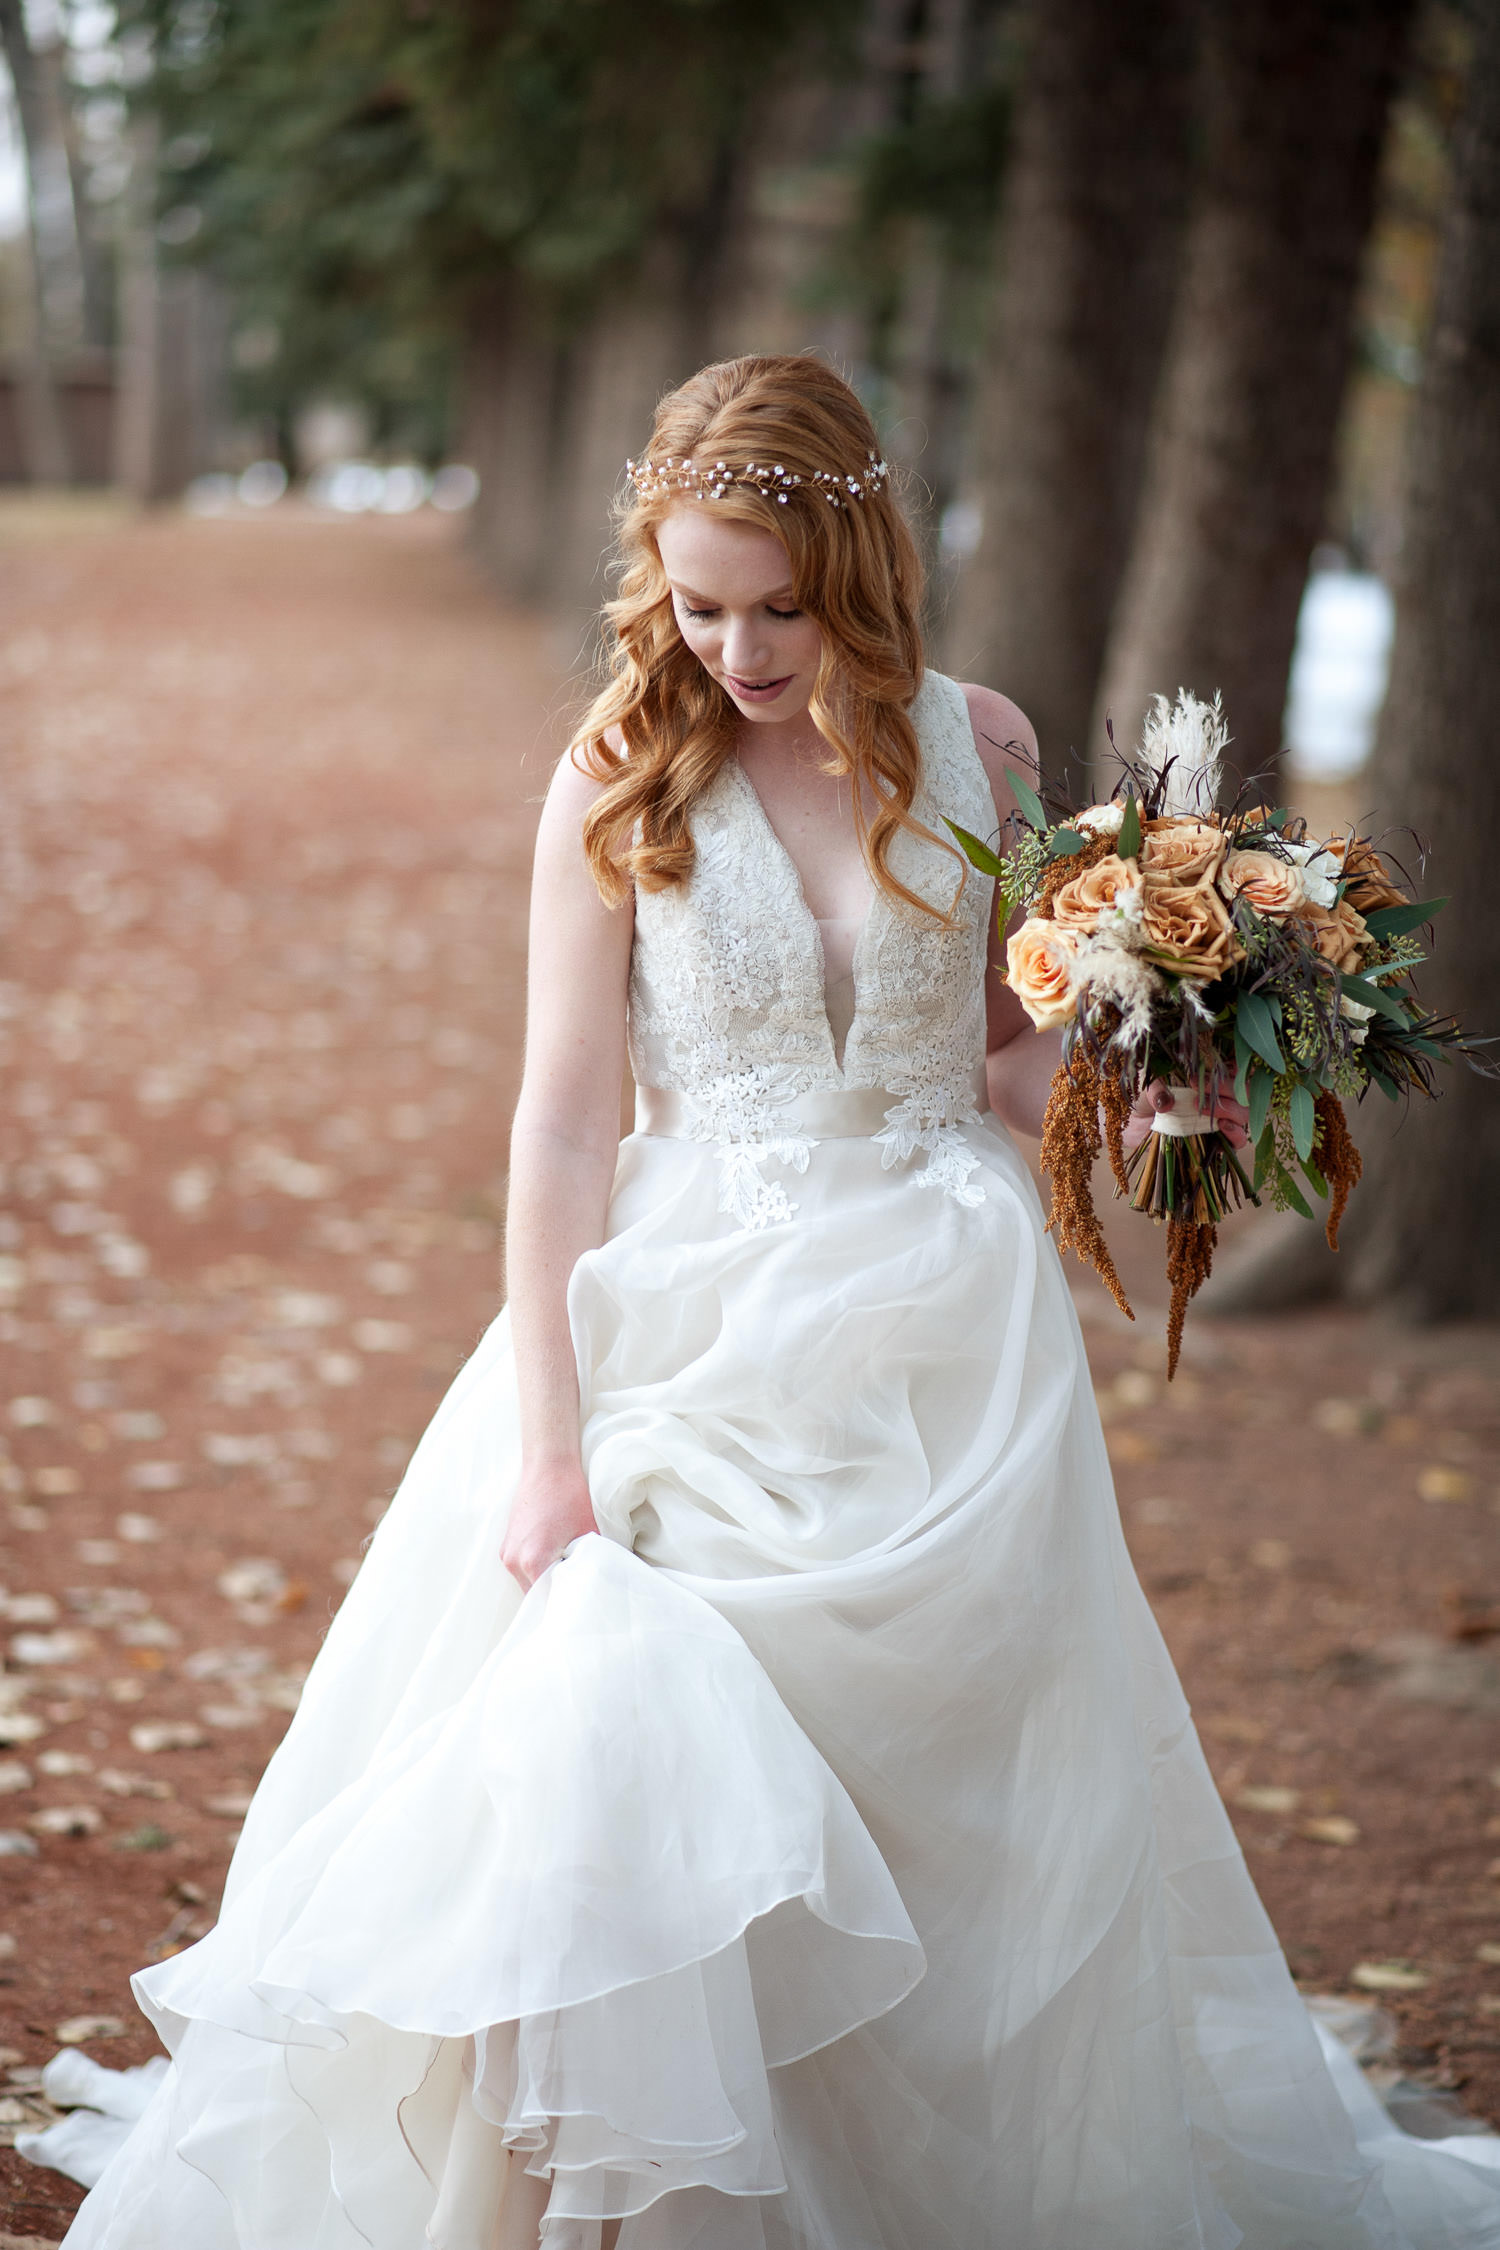 Fall bride walking in the leaves captured by Tara Whittaker Photography